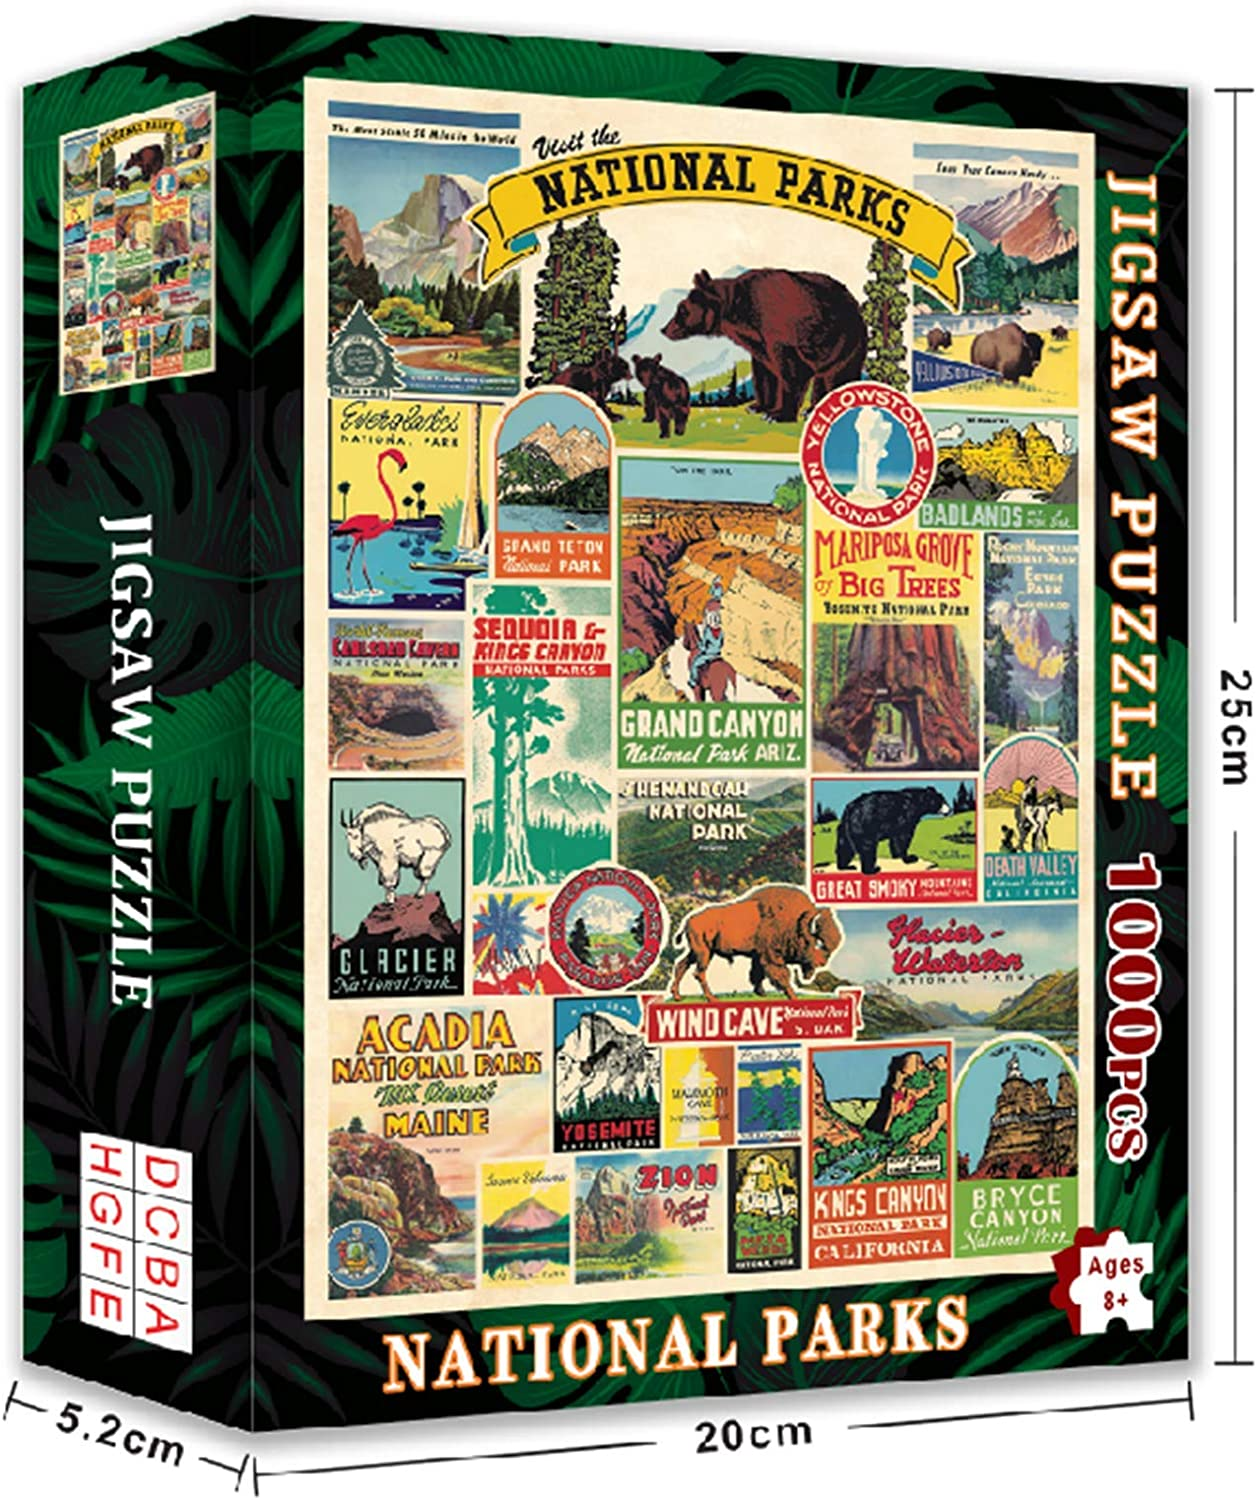 62 National Parks Wilderness Wonder 1000 Pieces Puzzles for Adults Jigsaw Puzzle Artwork Style Gifts DIY Mural Painting Entertainment Intellective Educational Toy Ideas for Relaxation Meditation Hobby